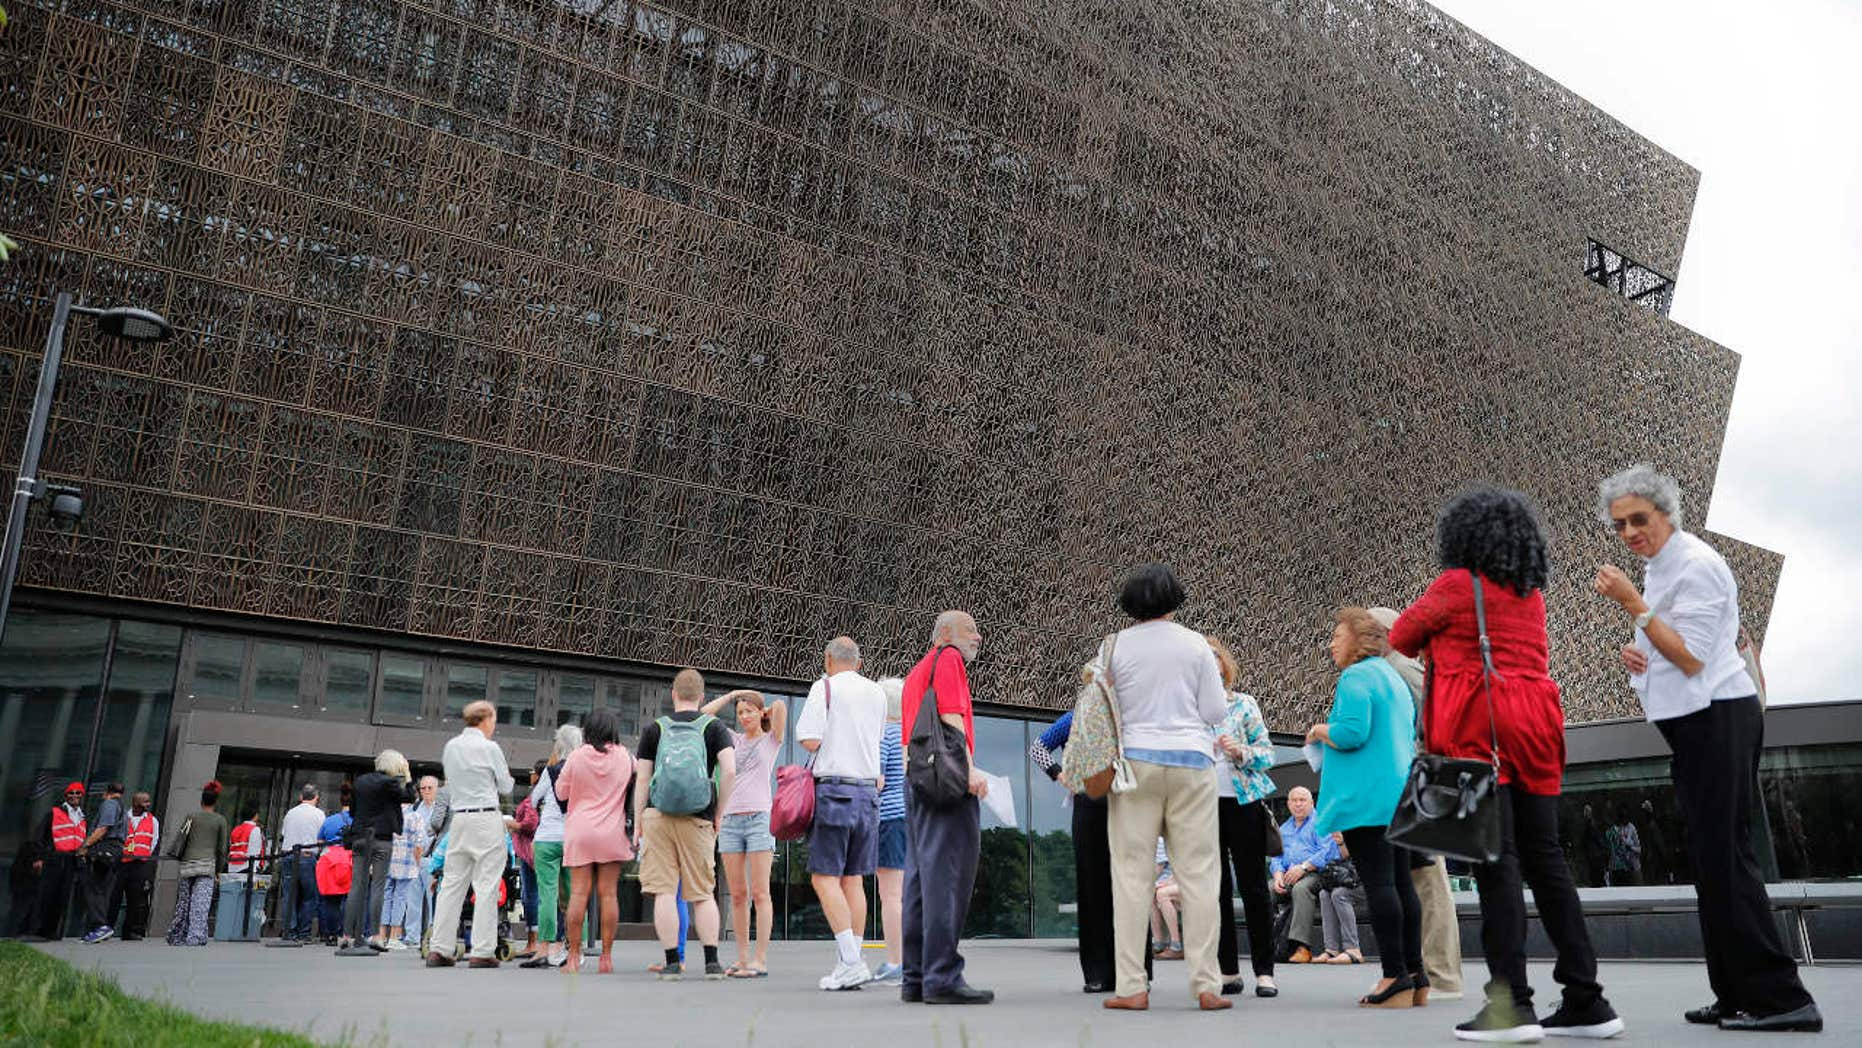 FILE- In this May 1, 2017, file photo, people wait in line to enter the Smithsonian National Museum of African American History and Cultural on the National Mall in Washington.